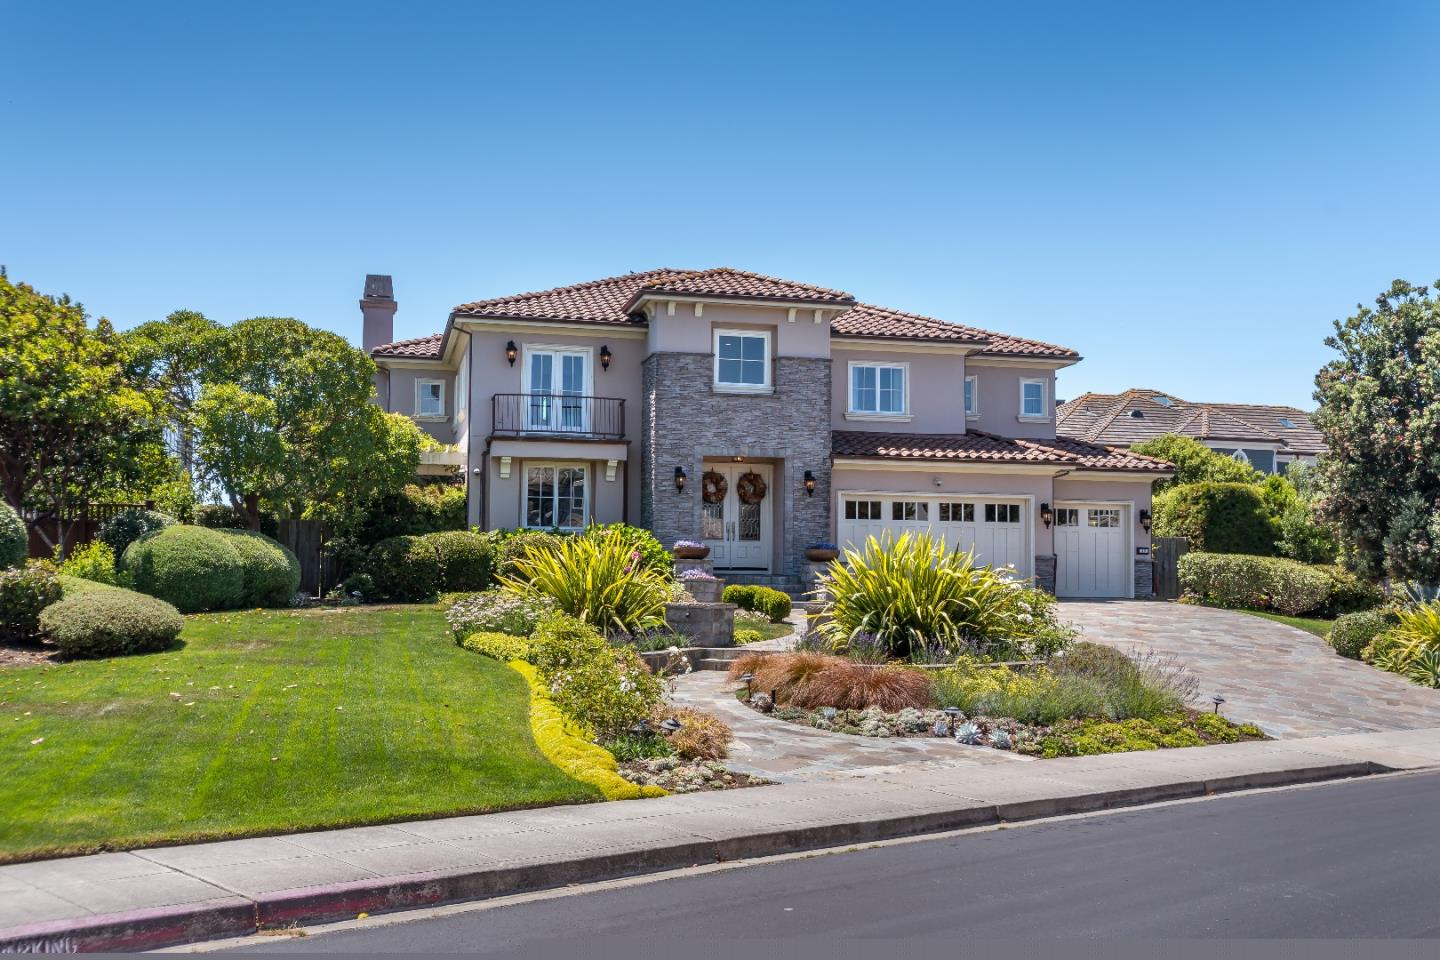 Single Family Home for Sale at 46 Spyglass Court Half Moon Bay, California 94019 United States